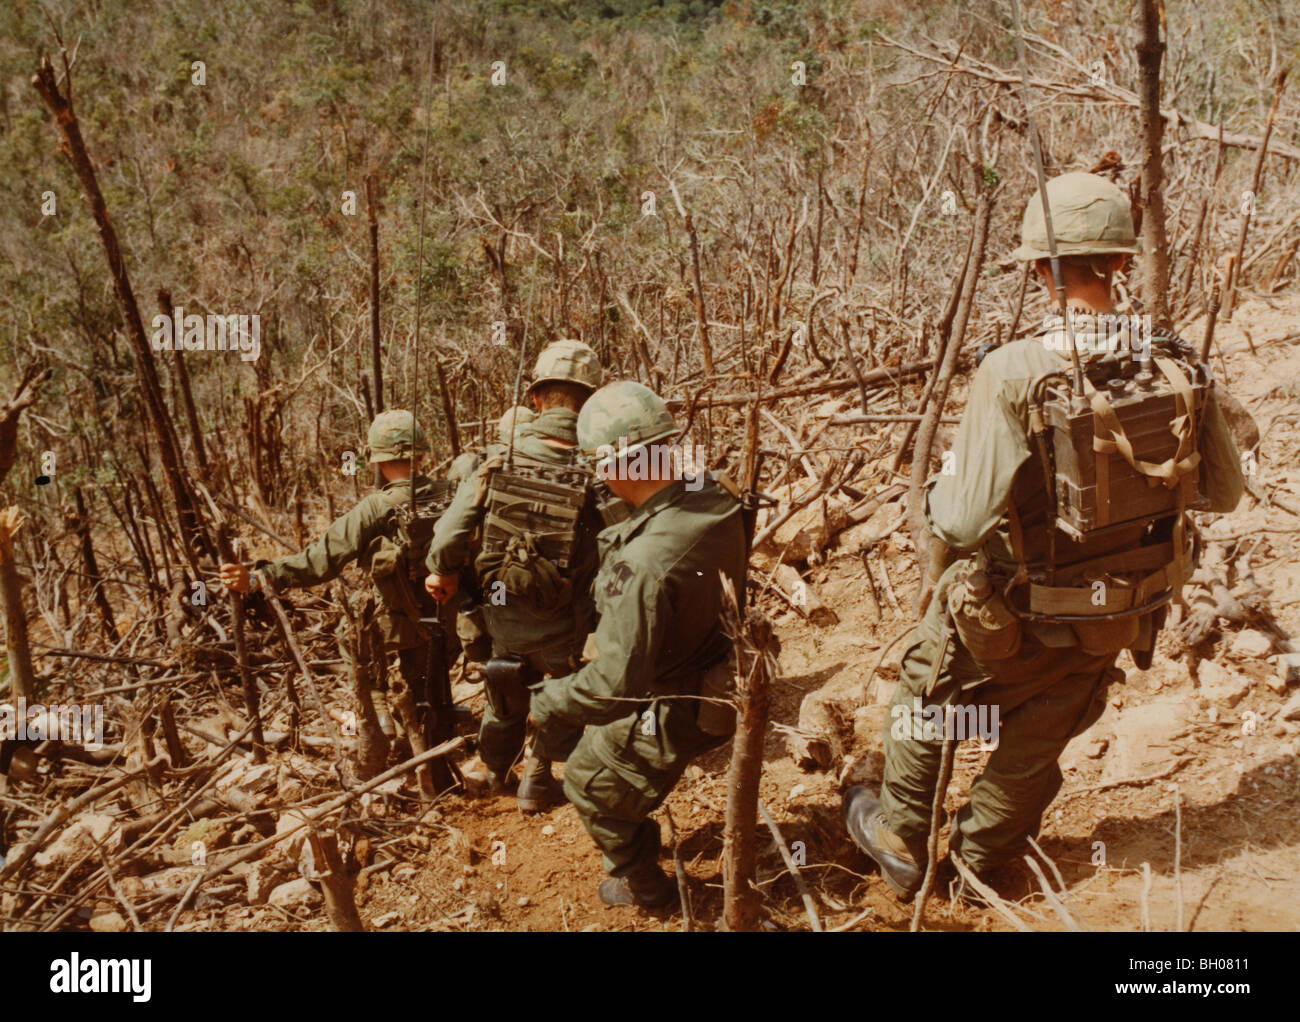 Troops of the C Co, 1st Battalion, 50th Mechanized, 1st Air Cavalry Division, move down the hillside - Stock Image